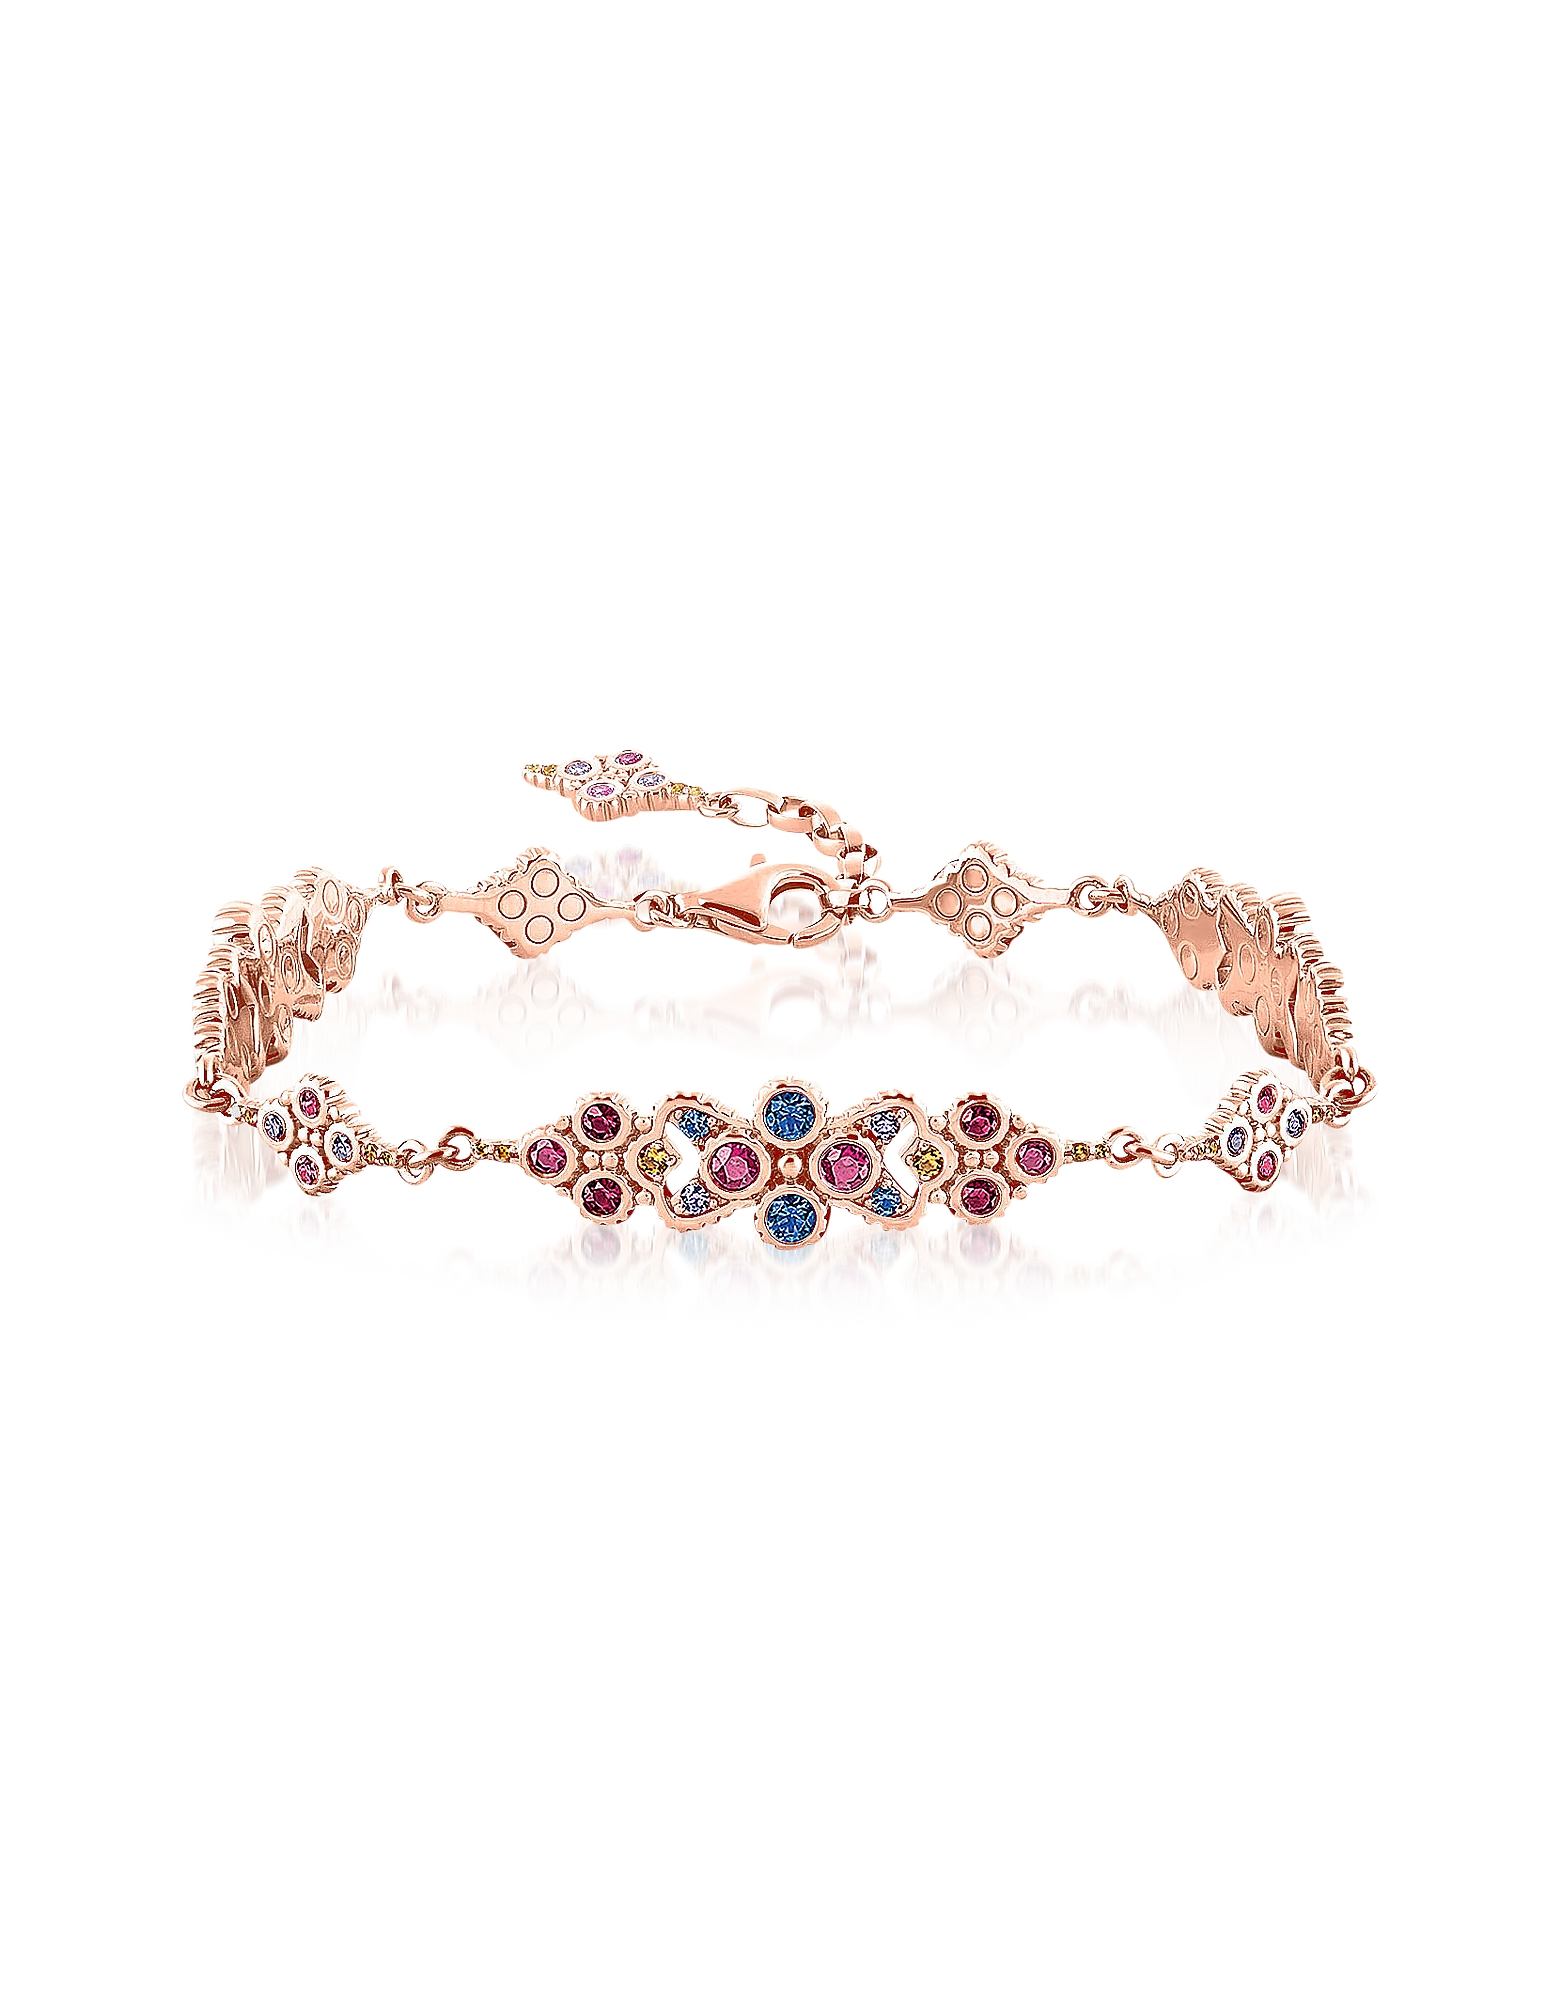 18k Rose Gold Plated Sterling Silver Royalty Colorful Stones Bracelet